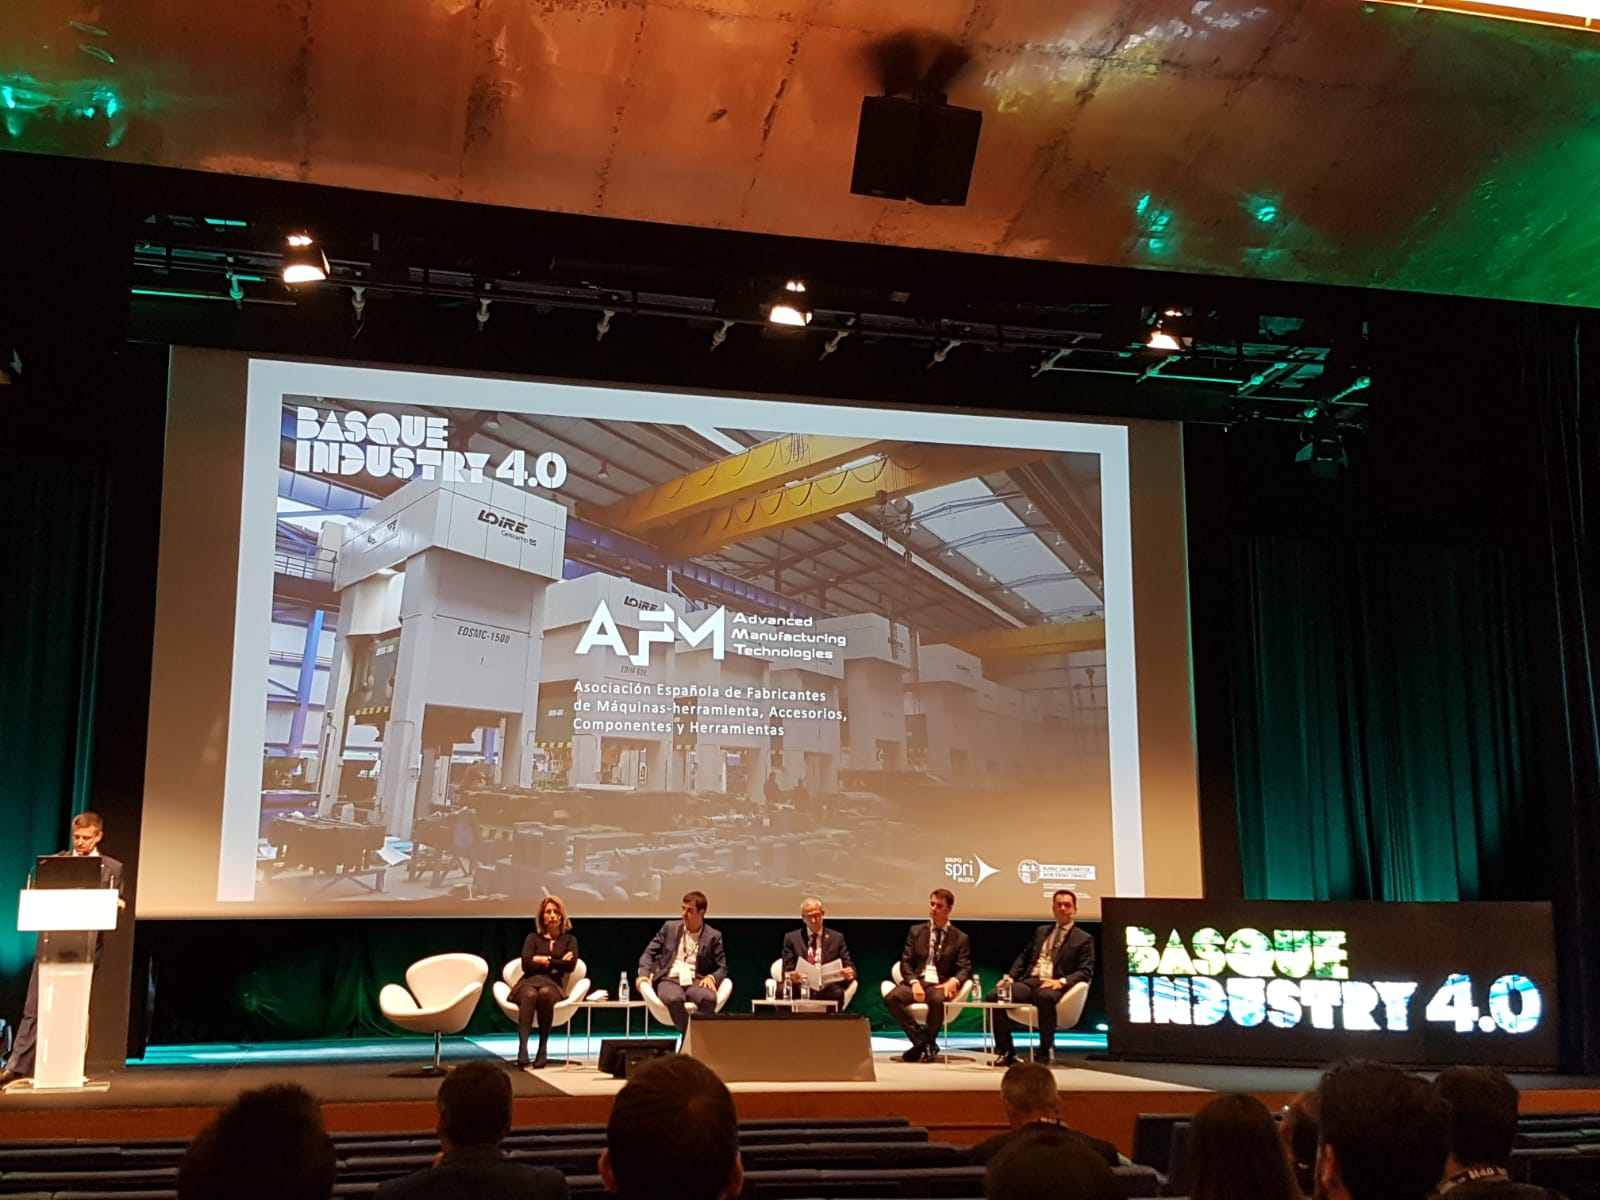 DANOBATGROUP present at the Basque Industry 4.0 event